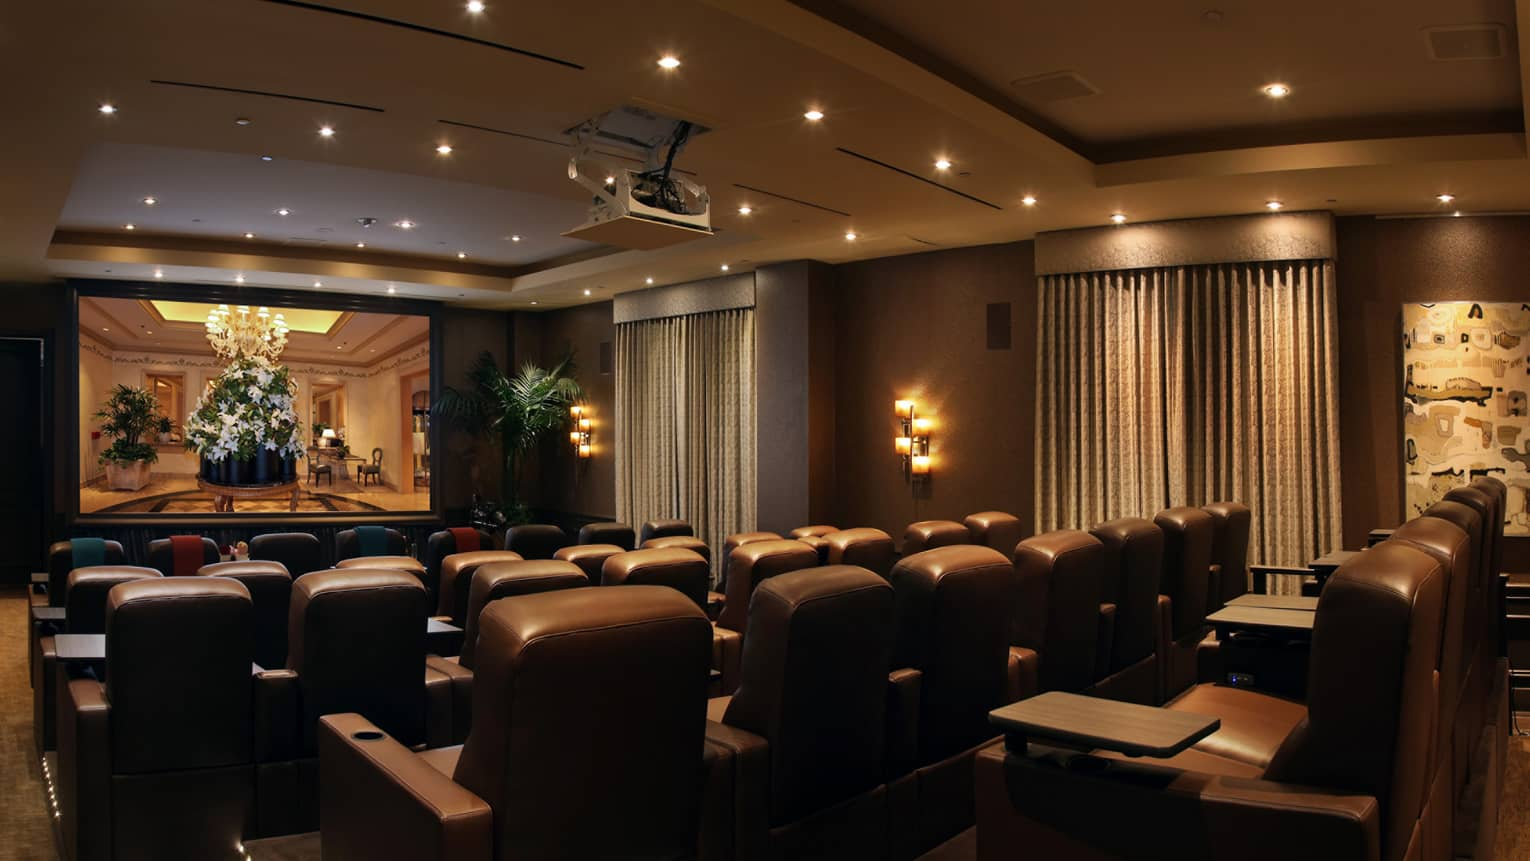 Rows of leather theatre chairs facing screen in movie screening room